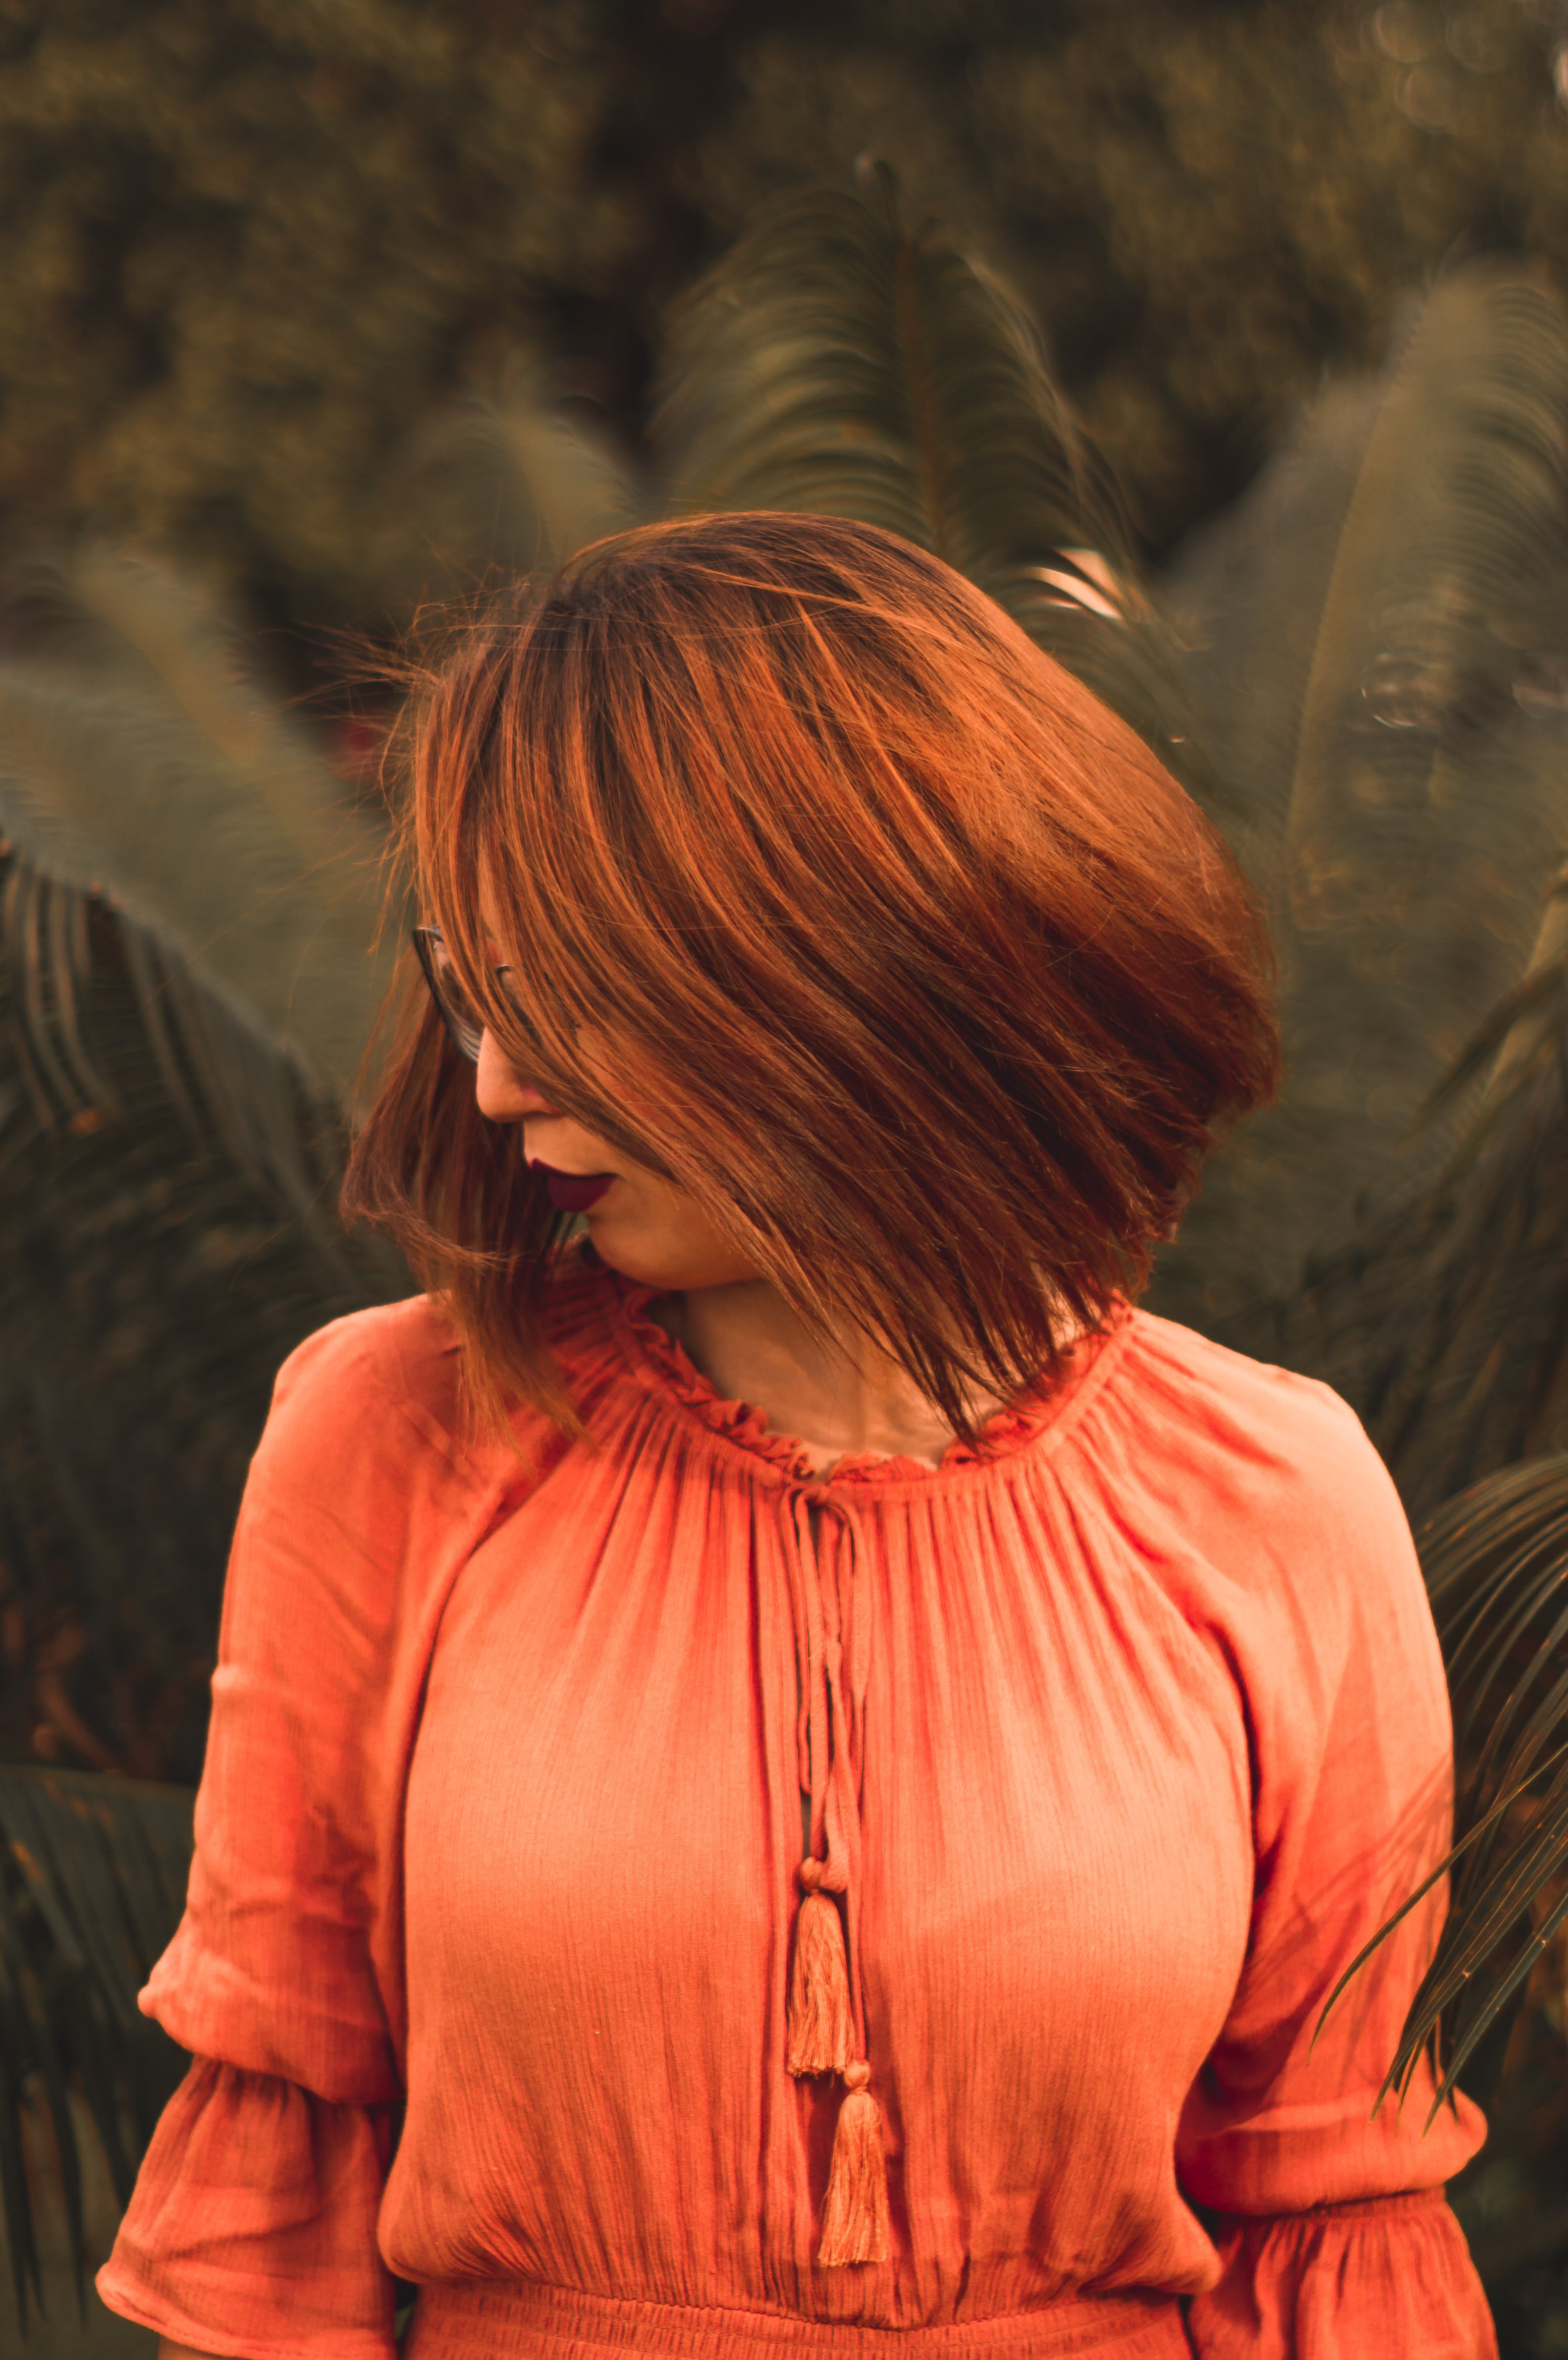 Free stock photo of red hair